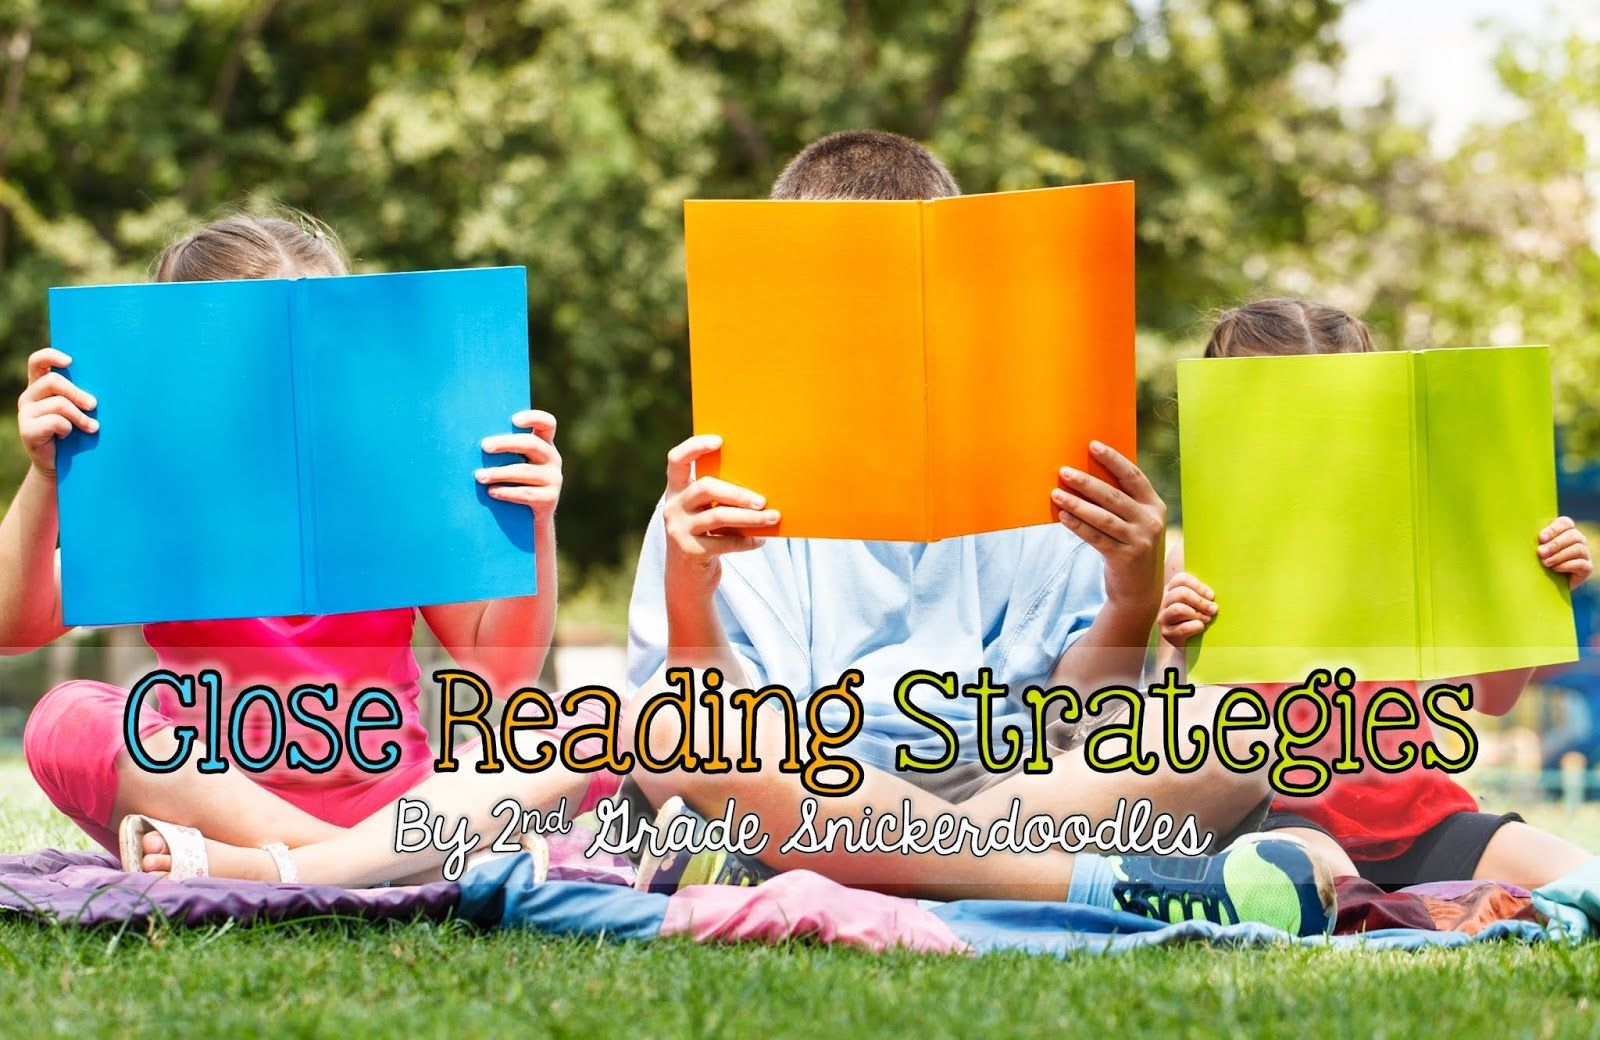 2nd Grade Snickerdoodles: Close Reading Strategies with FREE posters